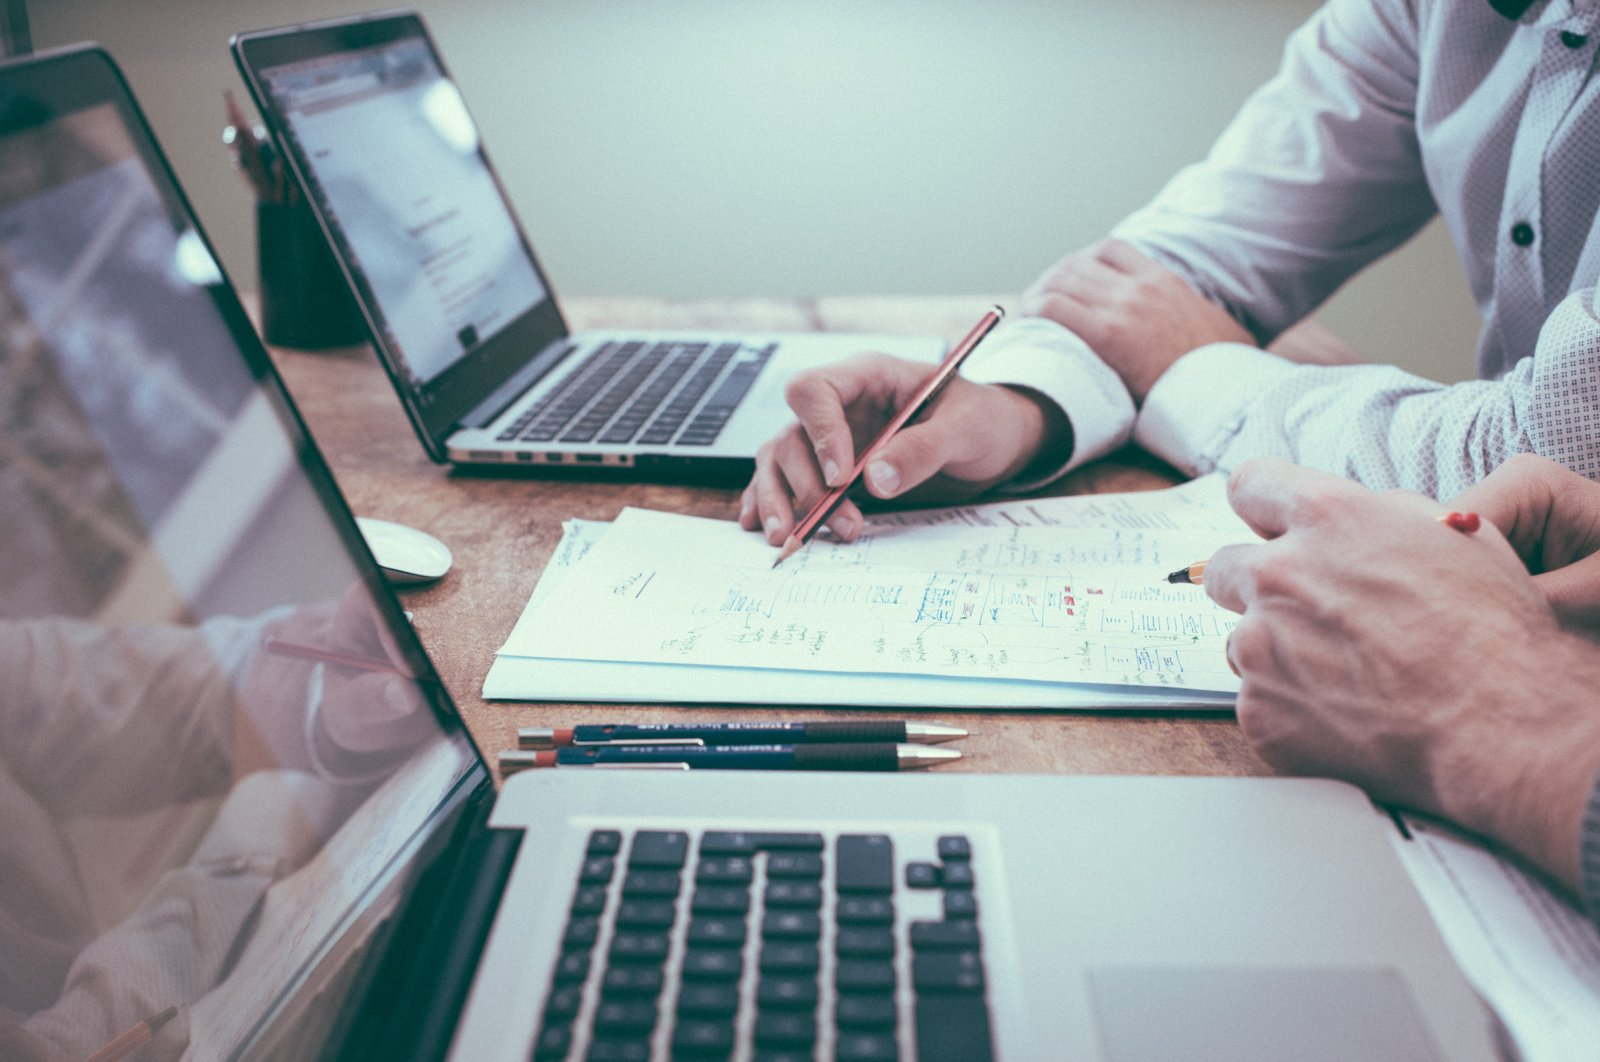 The sales automation platform, Ekmob, has been providing services to over 5,000 sales personnel affiliated with more than 300 corporate companies by 2020. (iStock Photo)